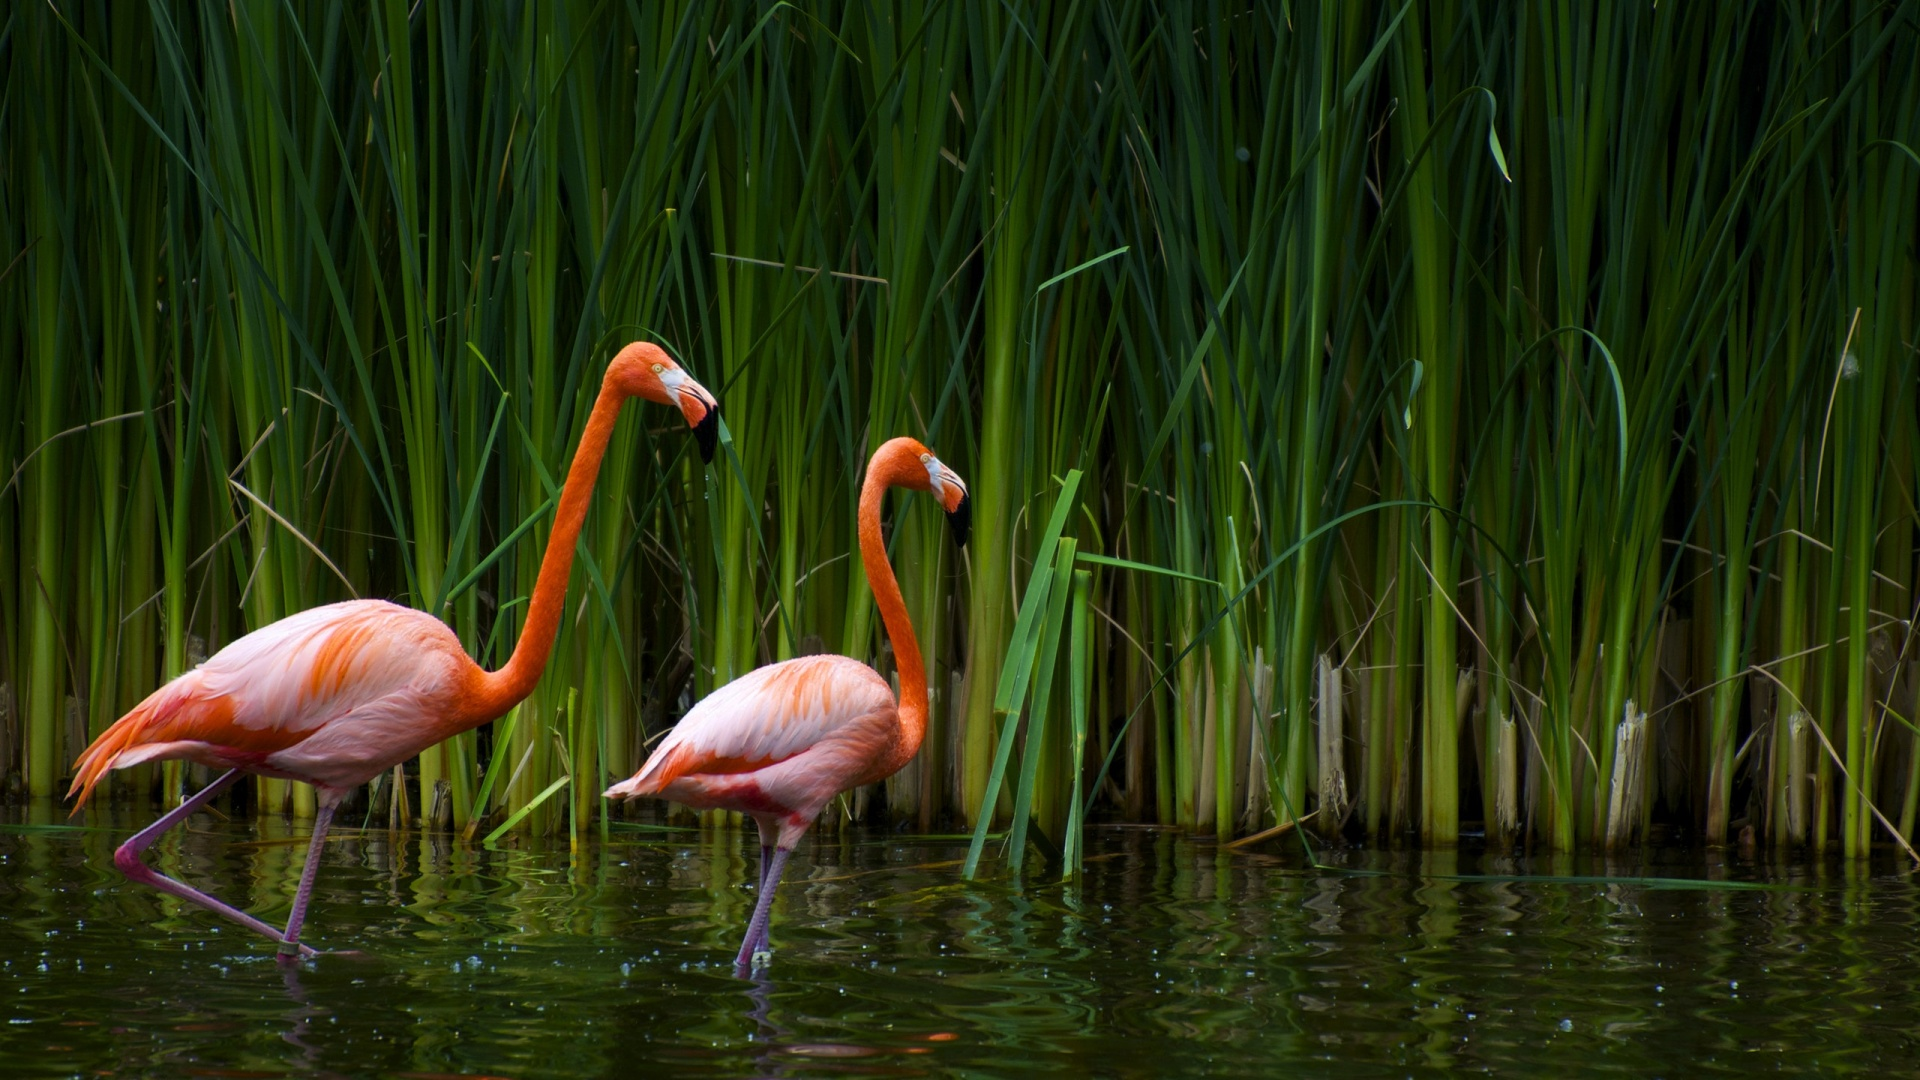 Beautiful Flamingos Wallpaper in 1920x1080 HD Resolutions